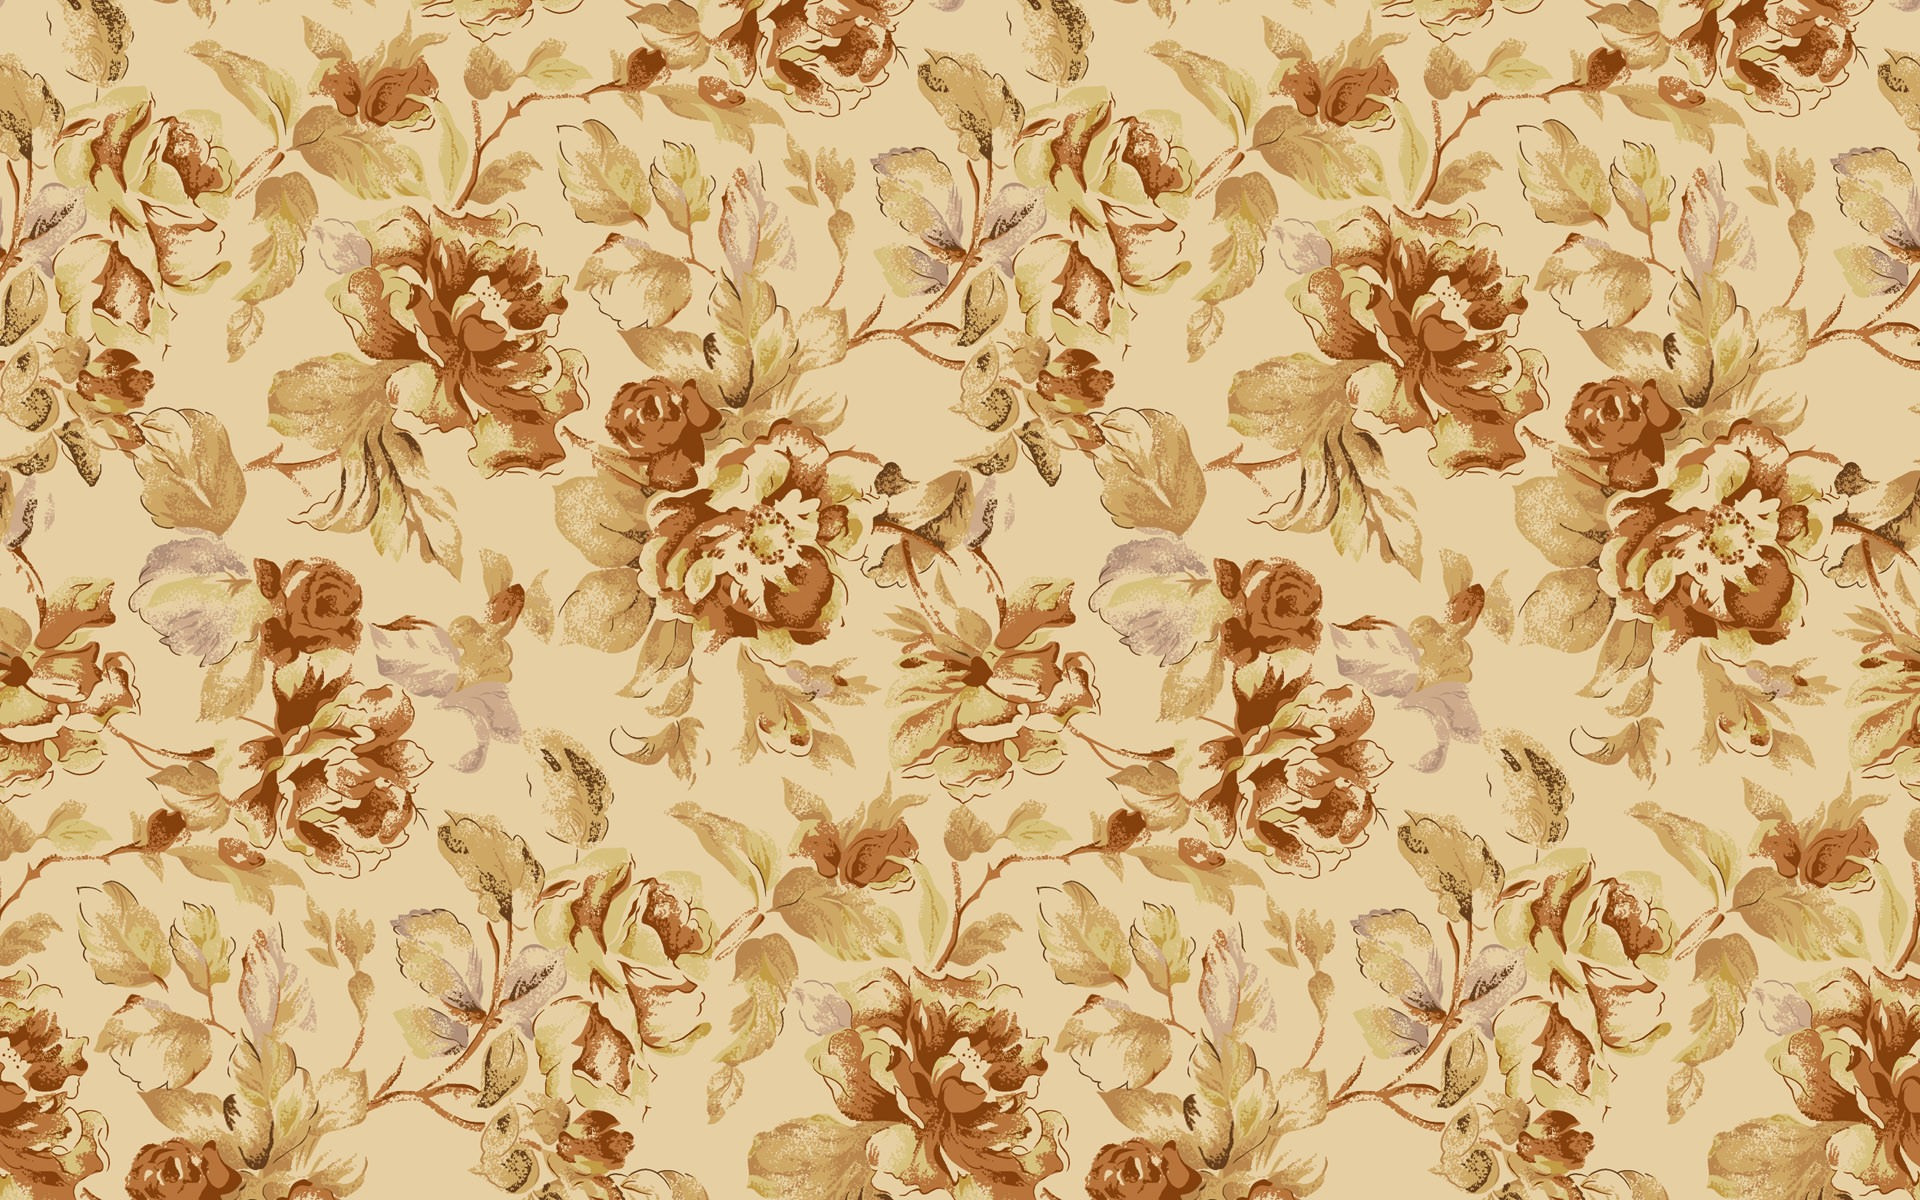 1920x1200 Simple Vintage Flowers Background Image